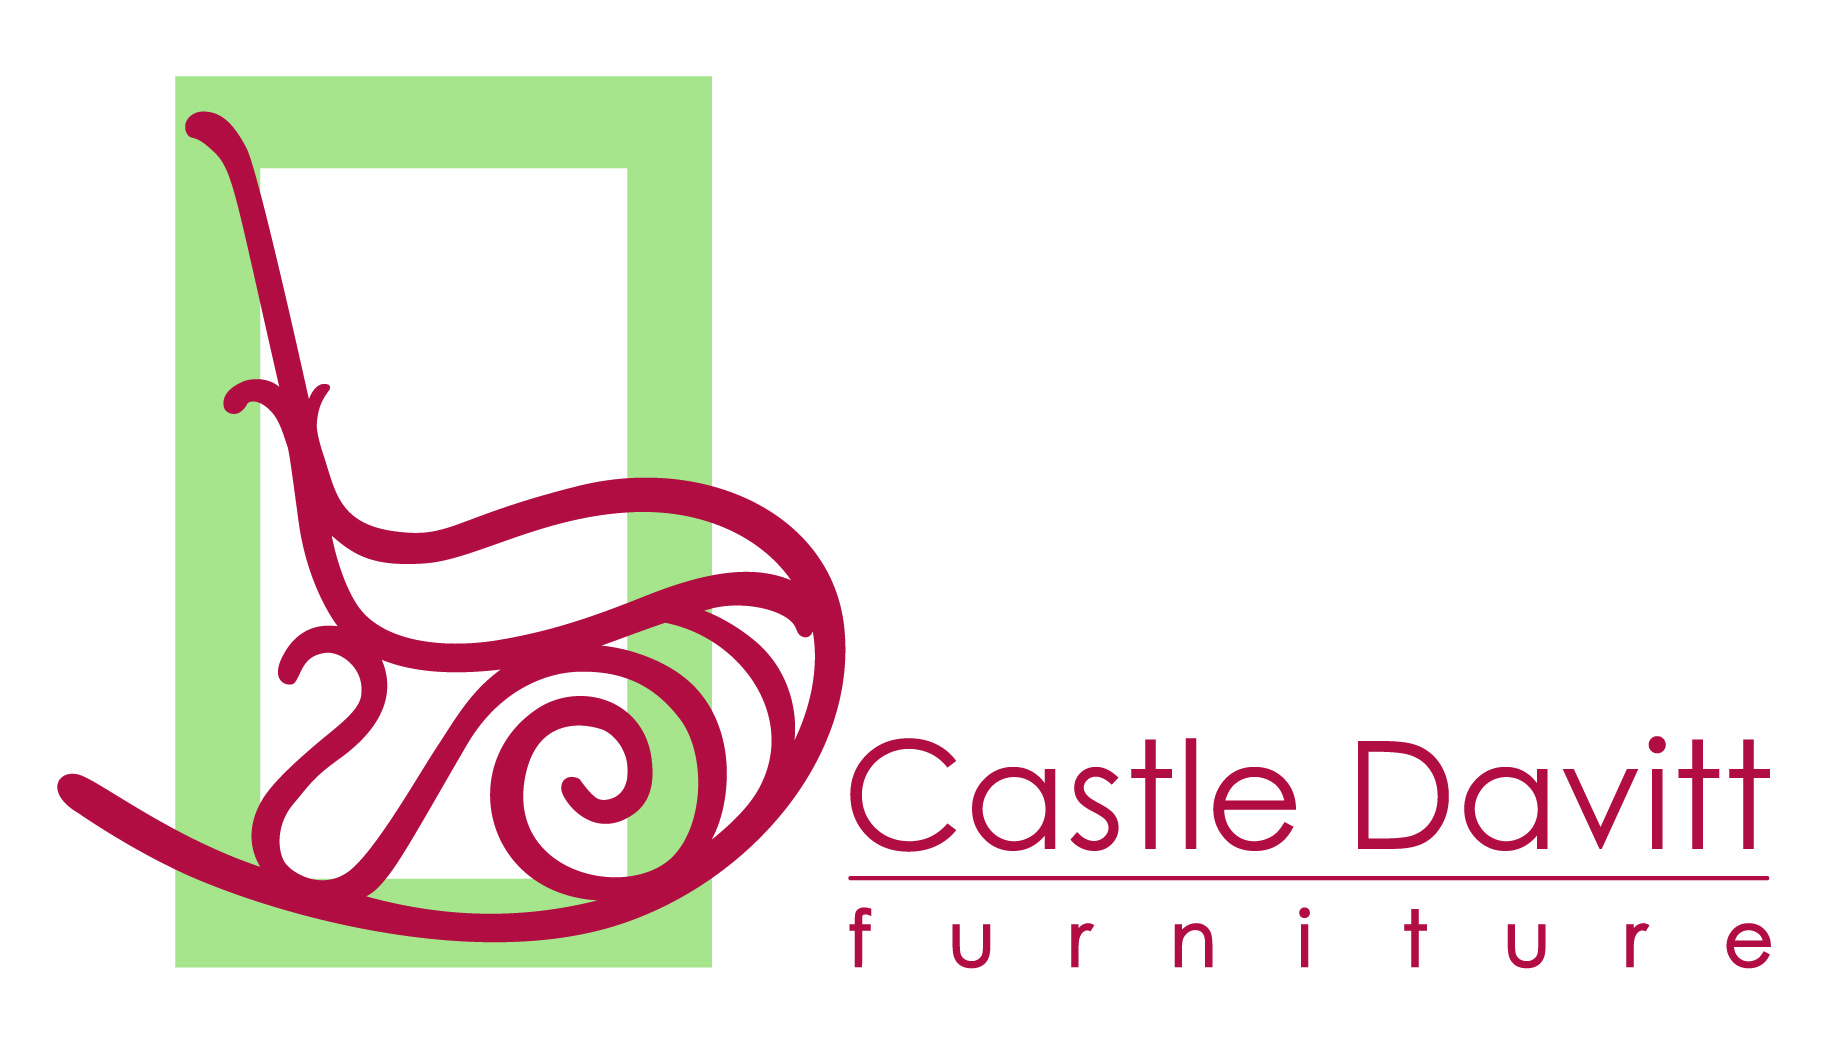 Castle Davitt Furniture